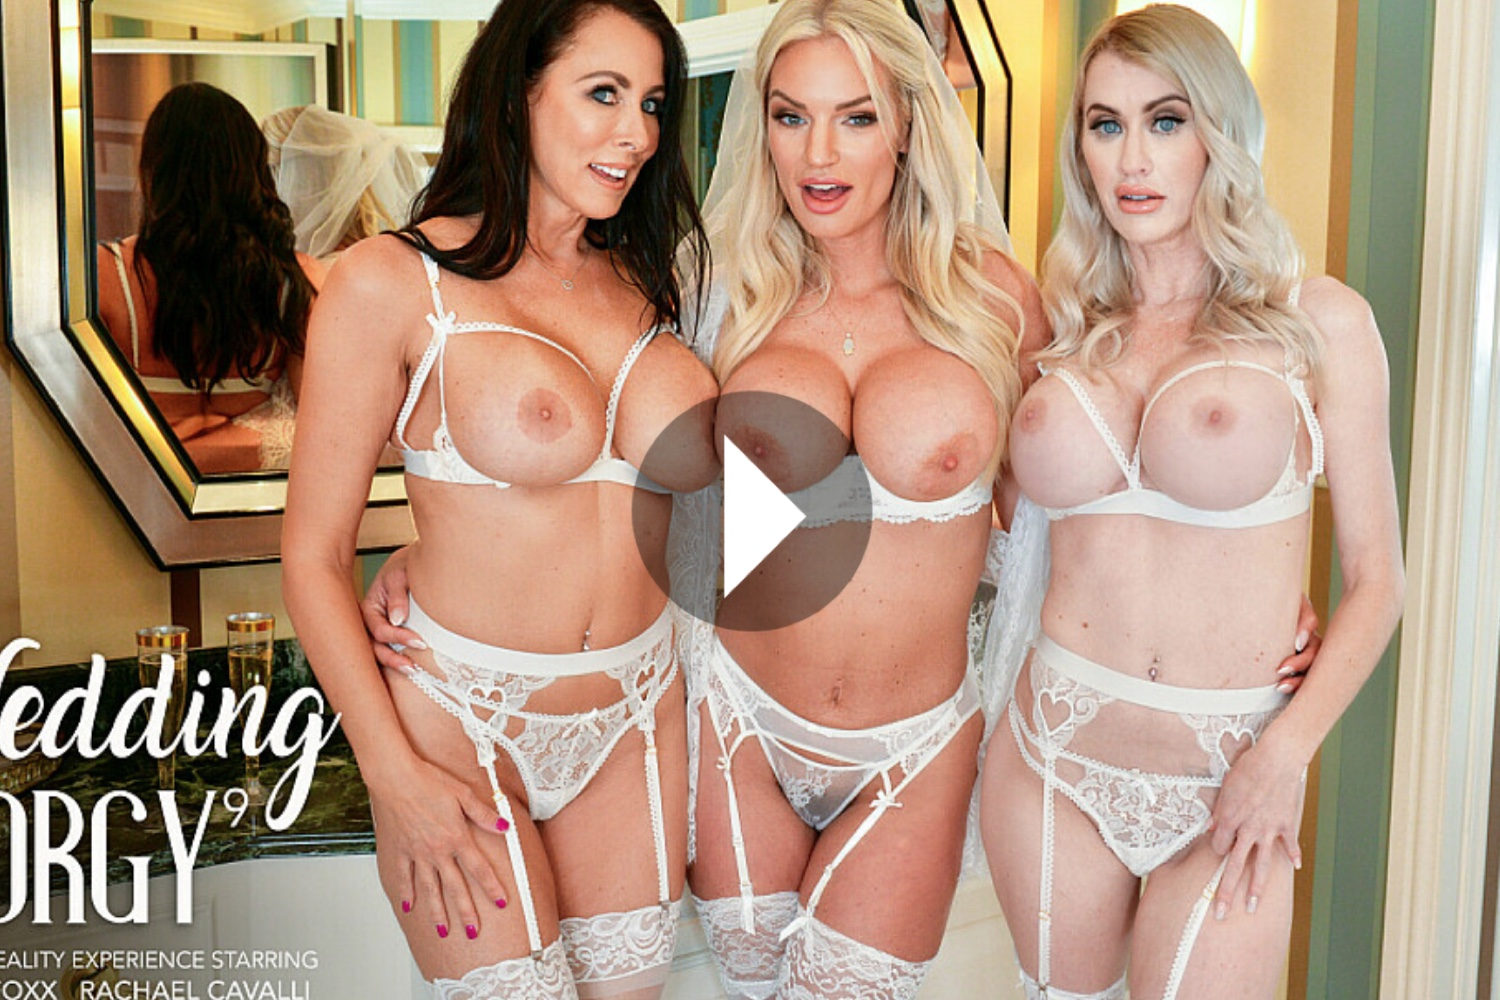 Wedding Orgy 9 - Reagan Foxx Virtual Reality Porn - Rachael Cavalli Virtual Reality Porn - Katie Monroe Virtual Reality Porn - Reagan Foxx VR Porn - Rachael Cavalli VR Porn - Katie Monroe VR Porn - Reagan Foxx Stockings - Rachael Cavalli Stockings - Katie Monroe Stockings